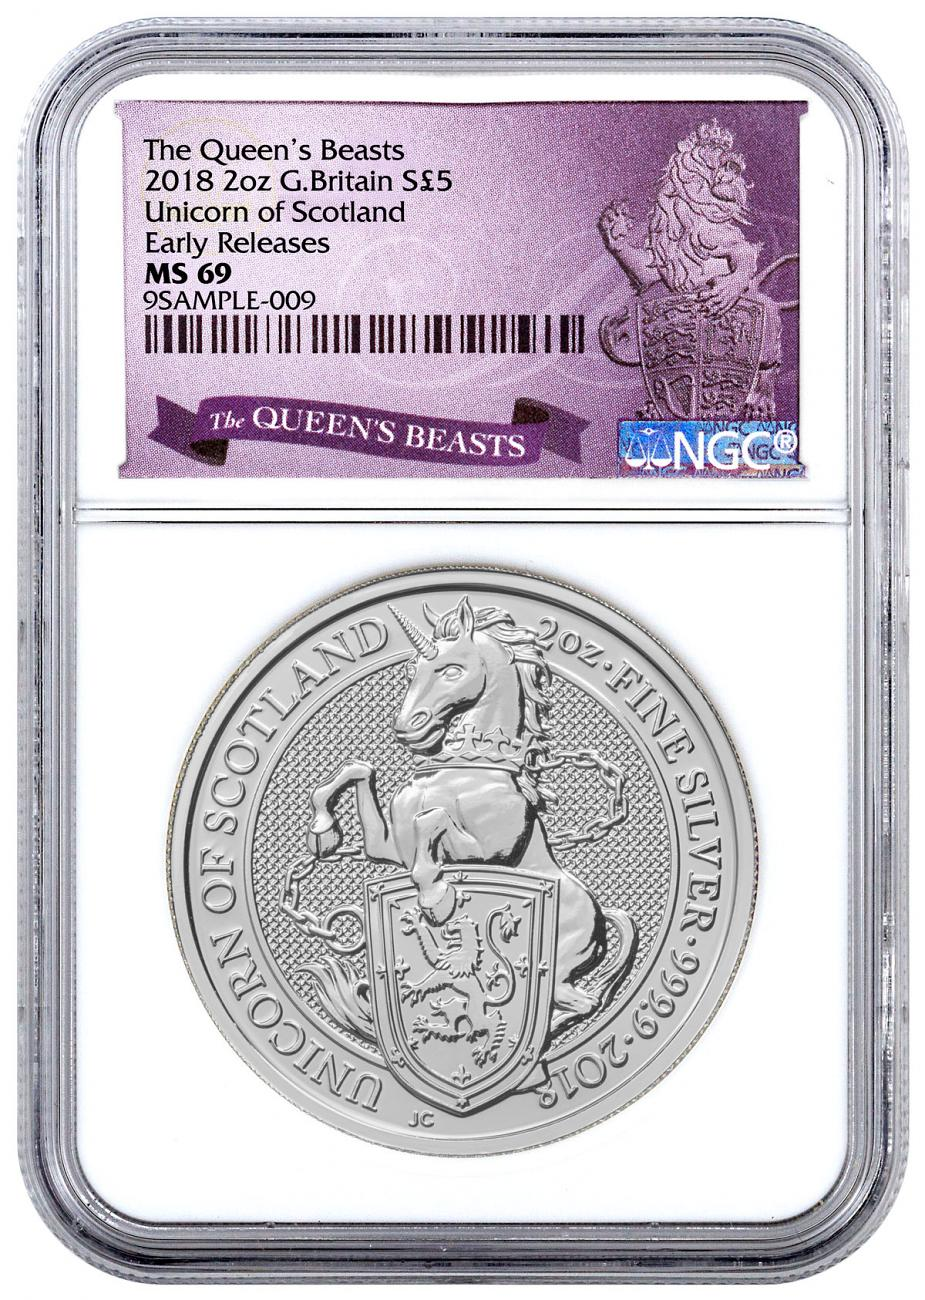 2018 Great Britain 2 oz Silver Queen's Beasts - Unicorn of Scotland £5 Coin NGC MS69 ER Exclusive Queens Beasts Label